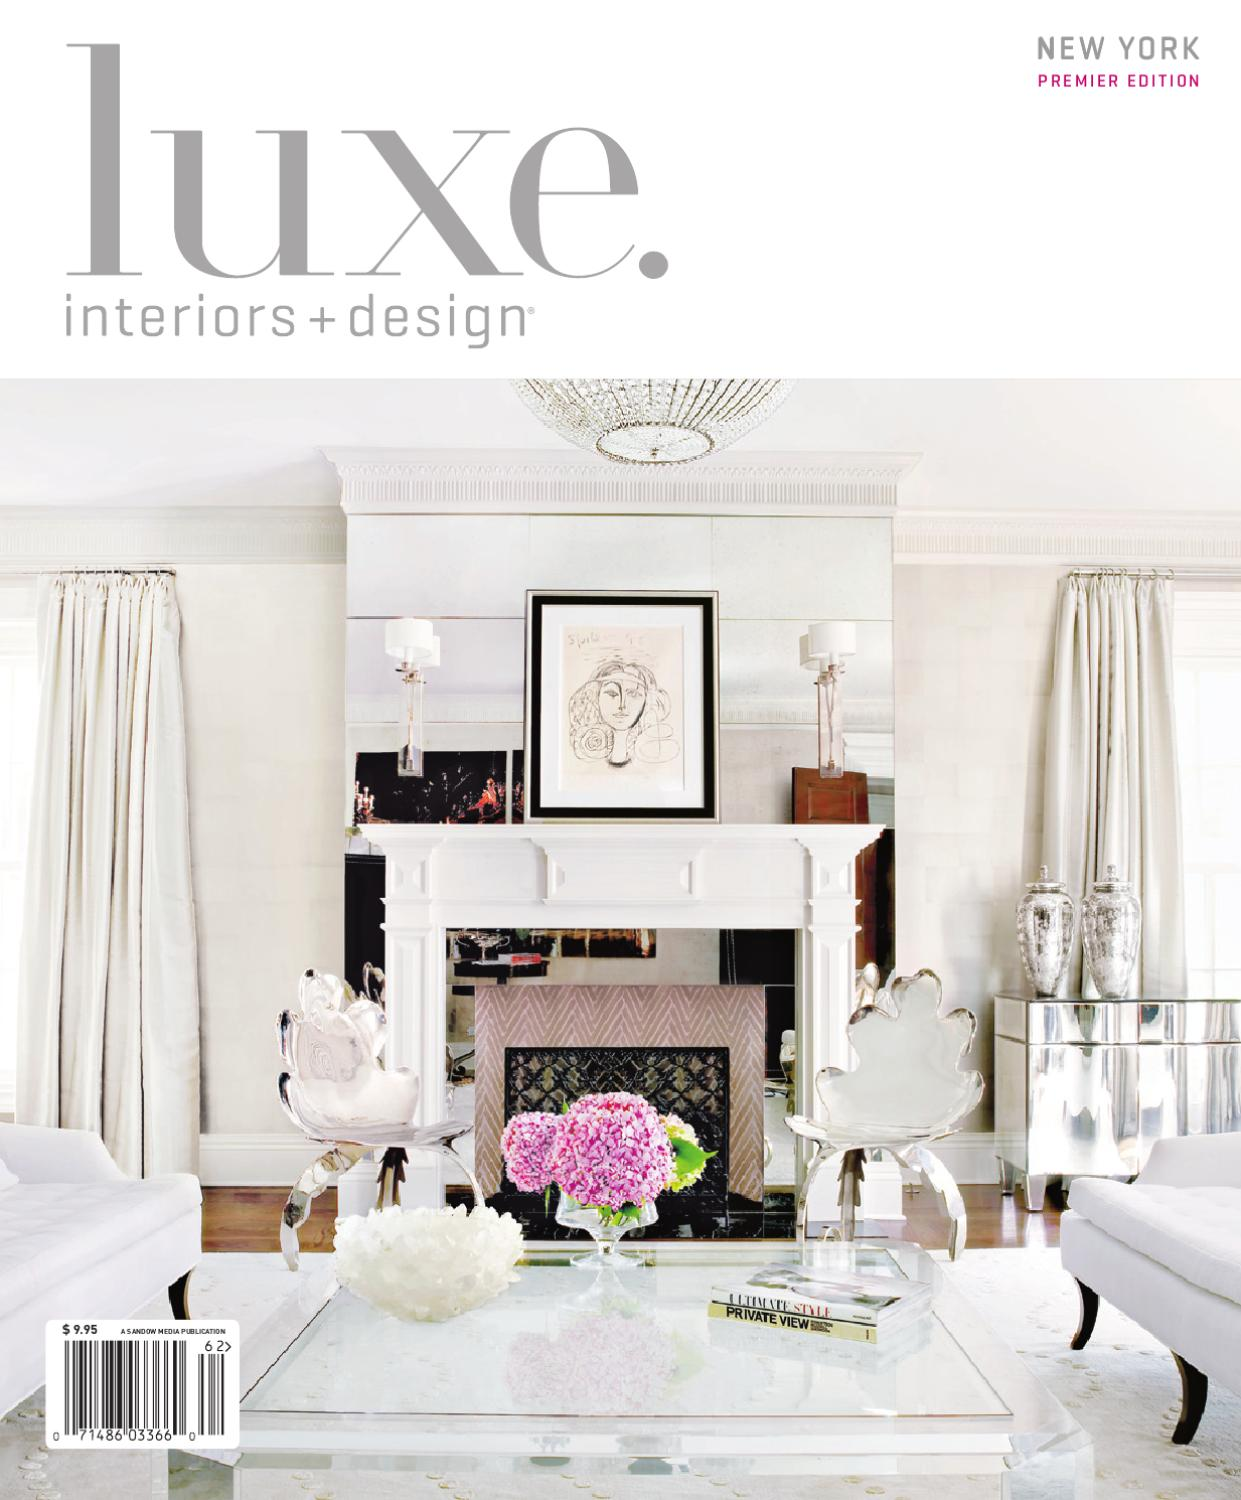 Luxe interior design new york by sandow media issuu for Luxe interieur design